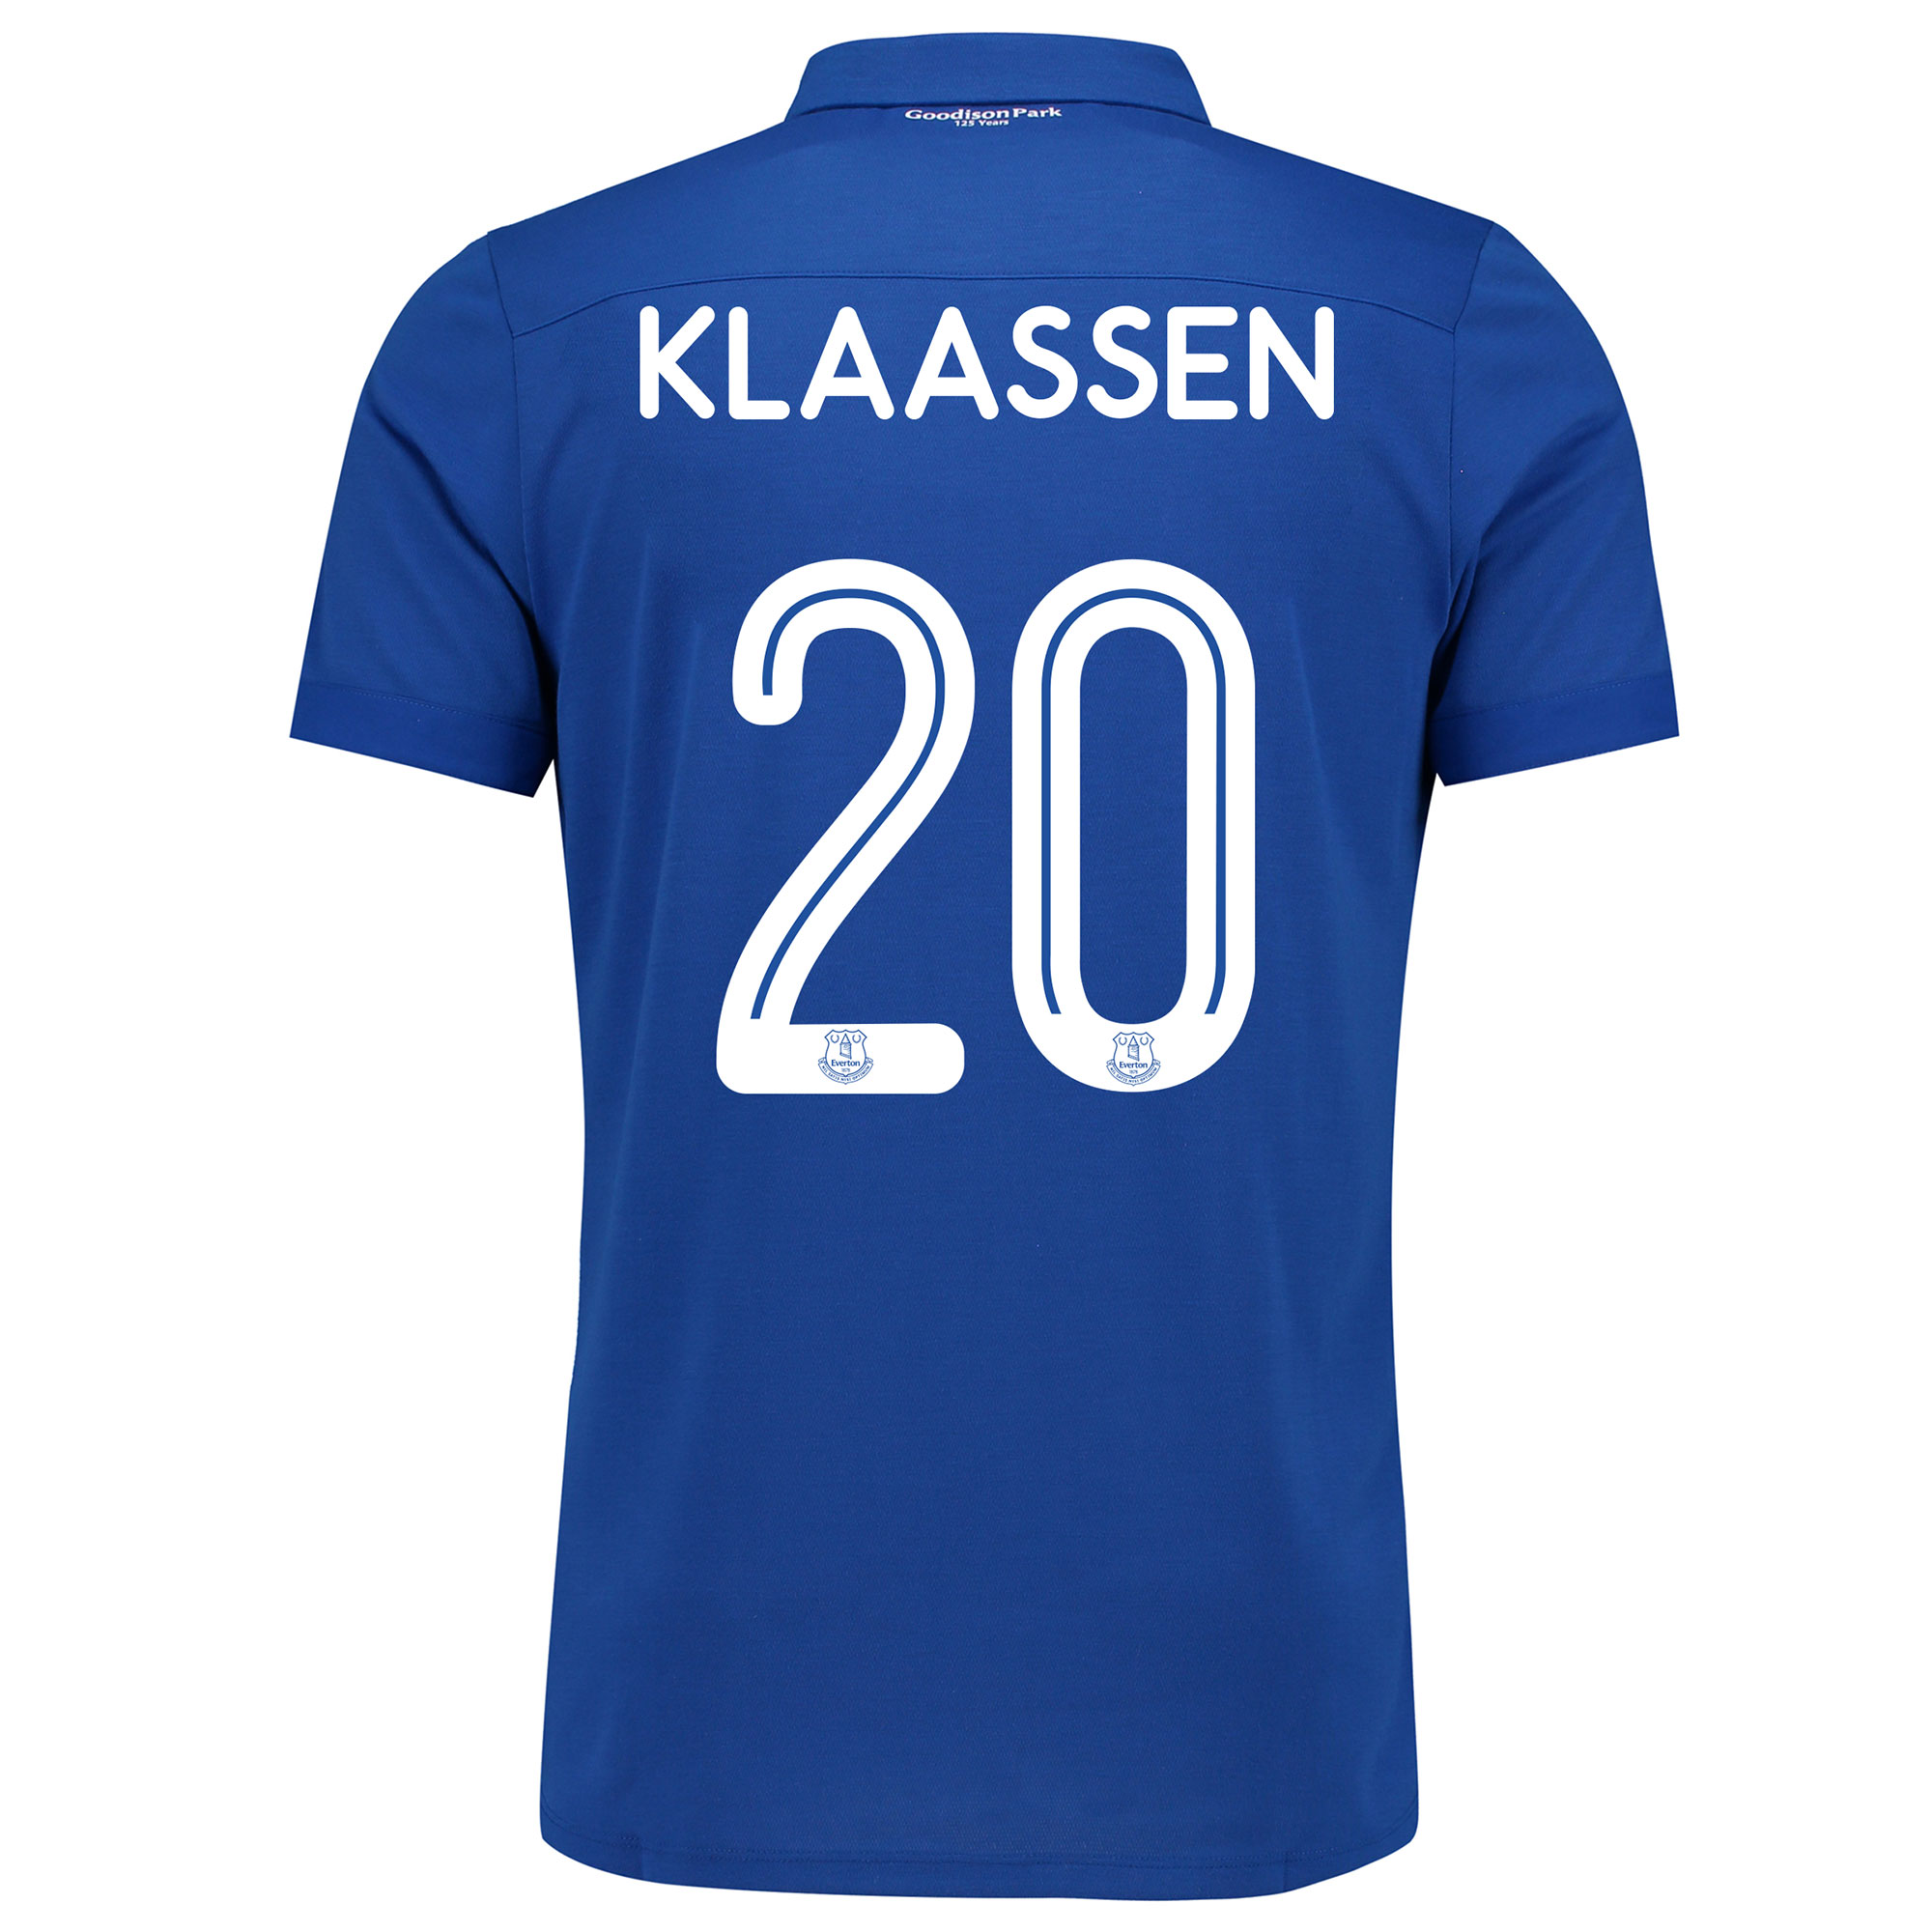 Image of Everton Commemorative Shirt with Klaassen 20 printing